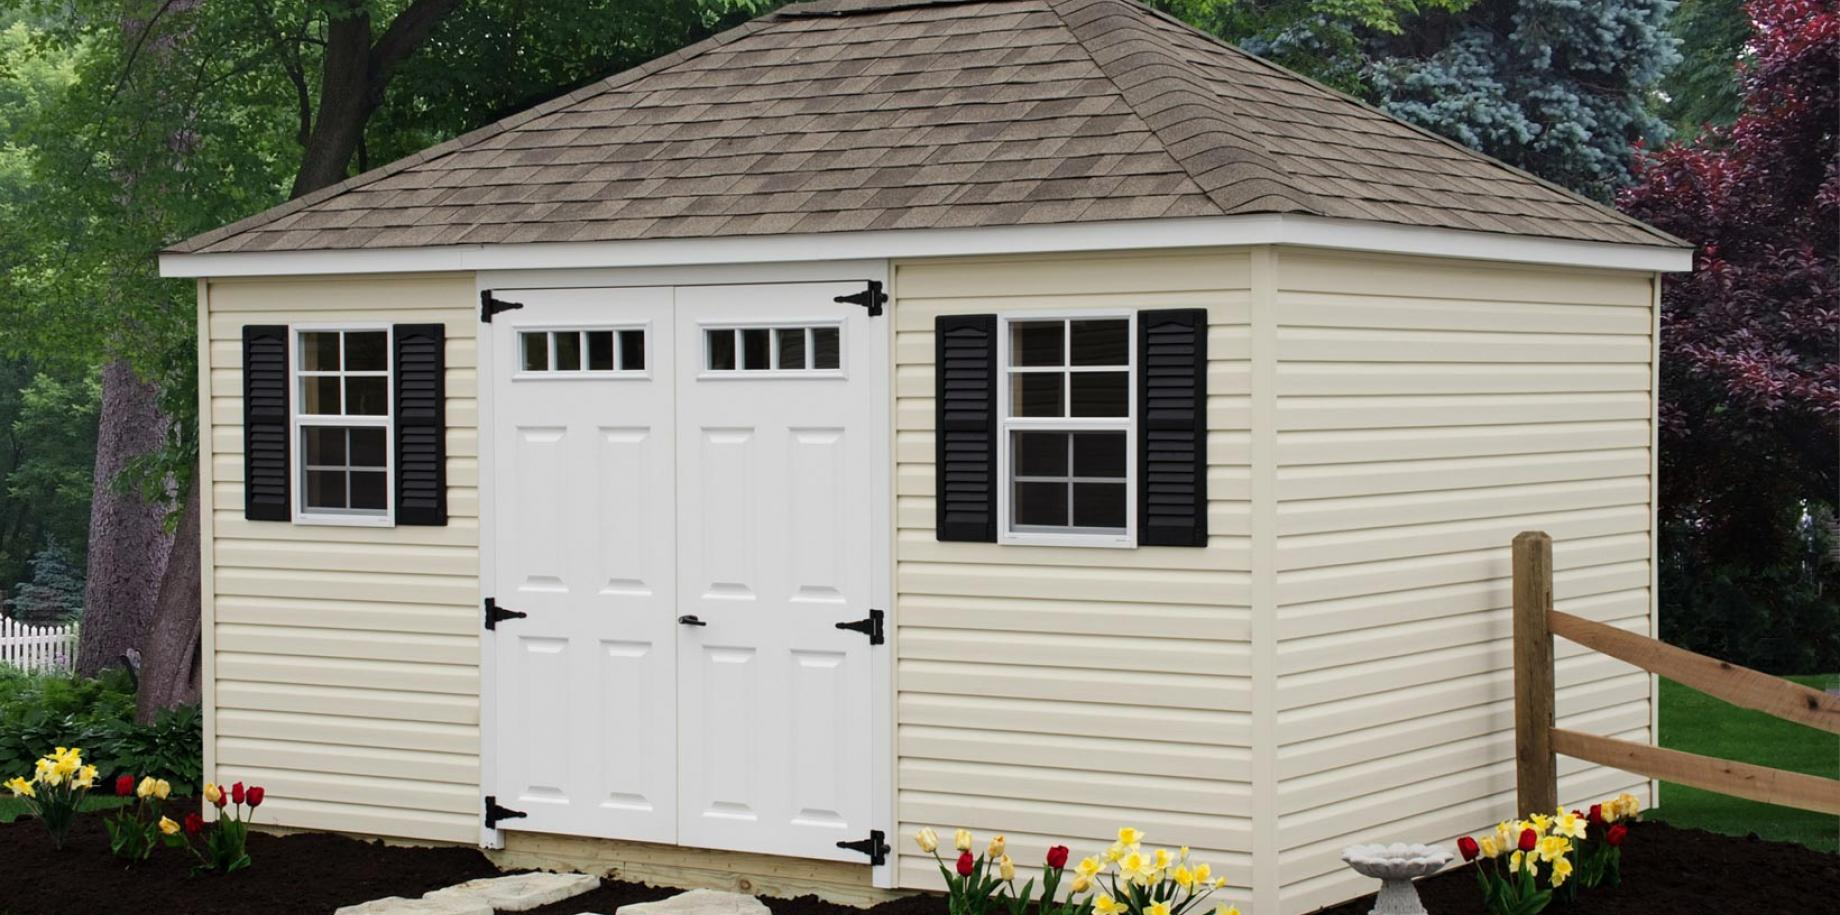 Hip-roof style shed with vinyl siding.